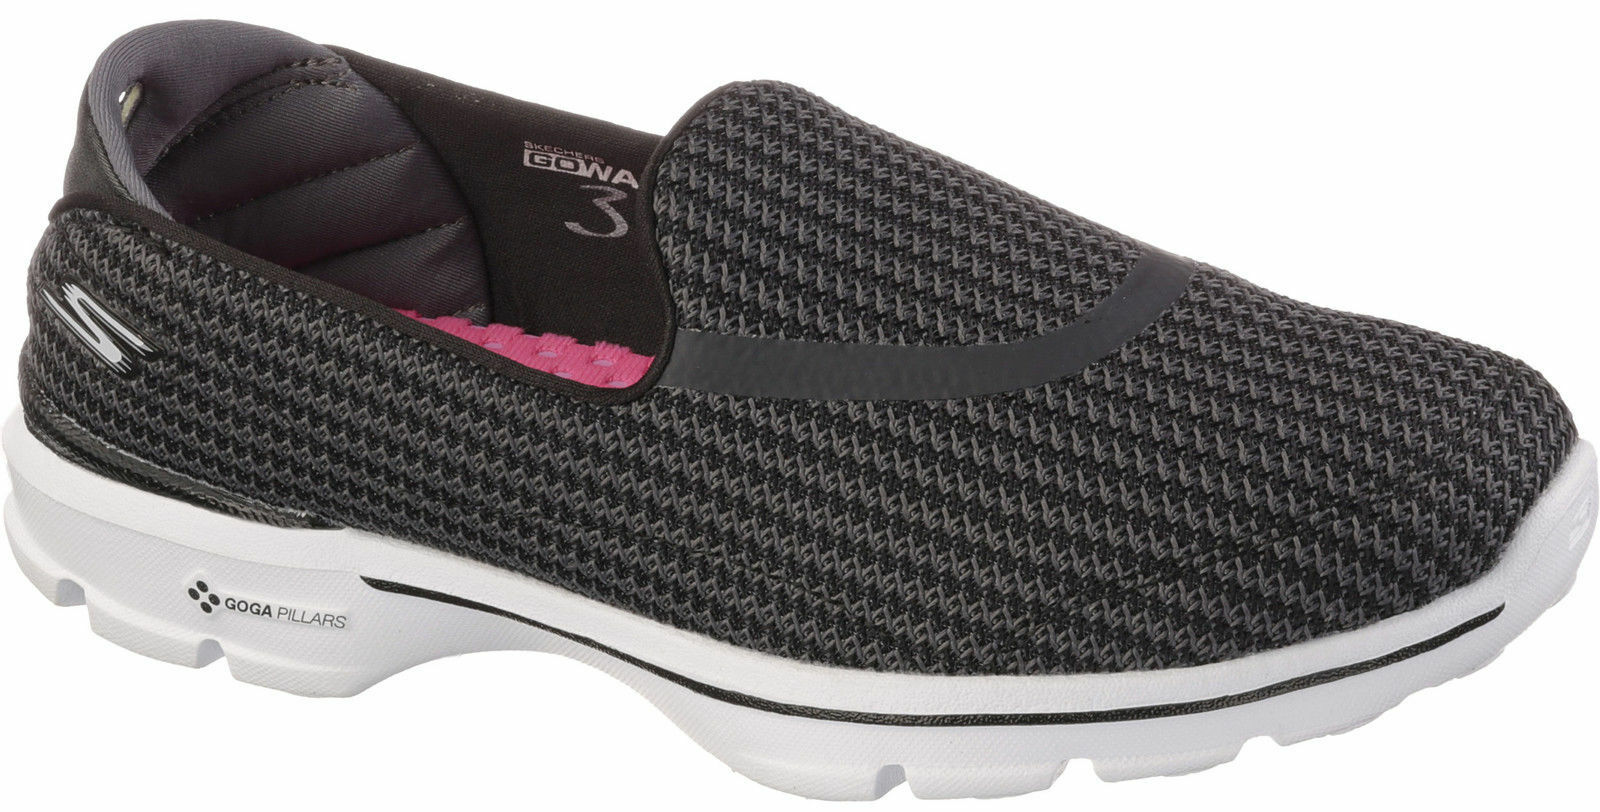 NEU WOMEN'S SKECHERS GO WALK 3 BLACK SLIP ON GOGA MAT COMFORTABLE Schuhe 13980